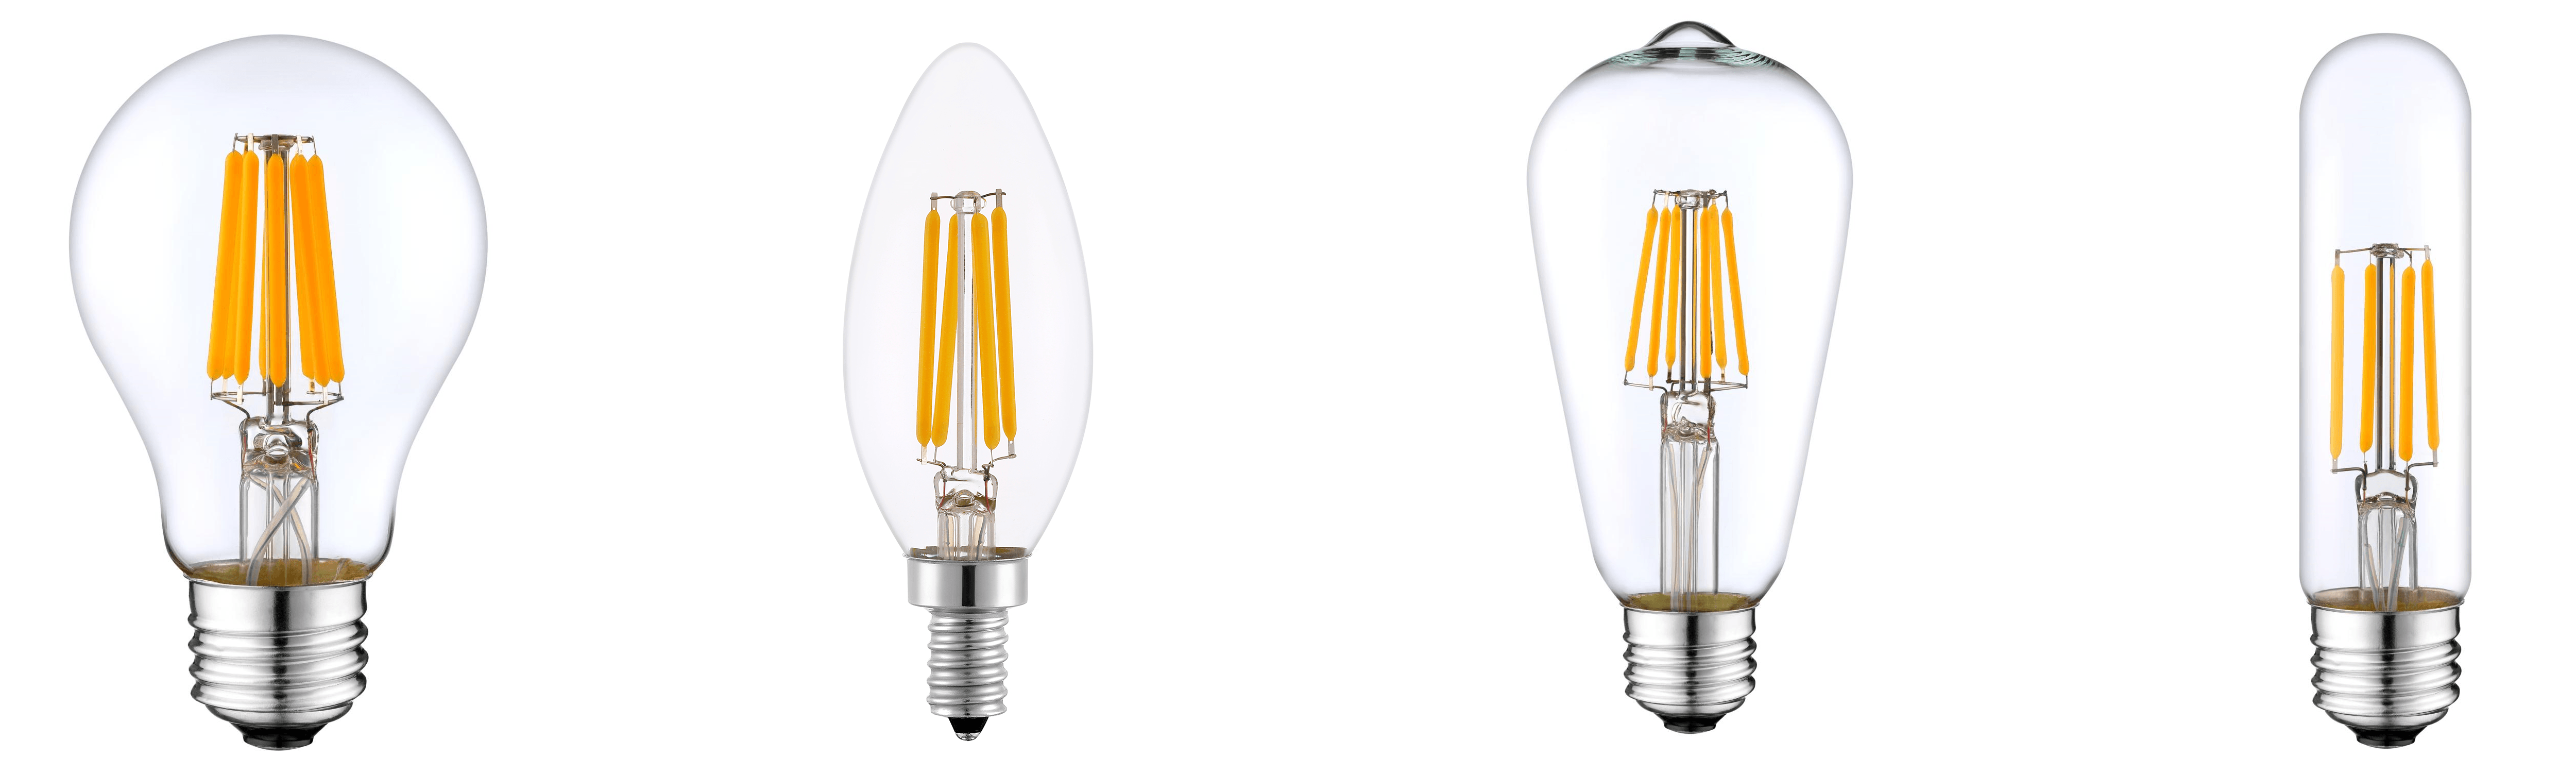 Our entire Edison filament bulb line. Make great replacements for incandescents in bars and restaurants.